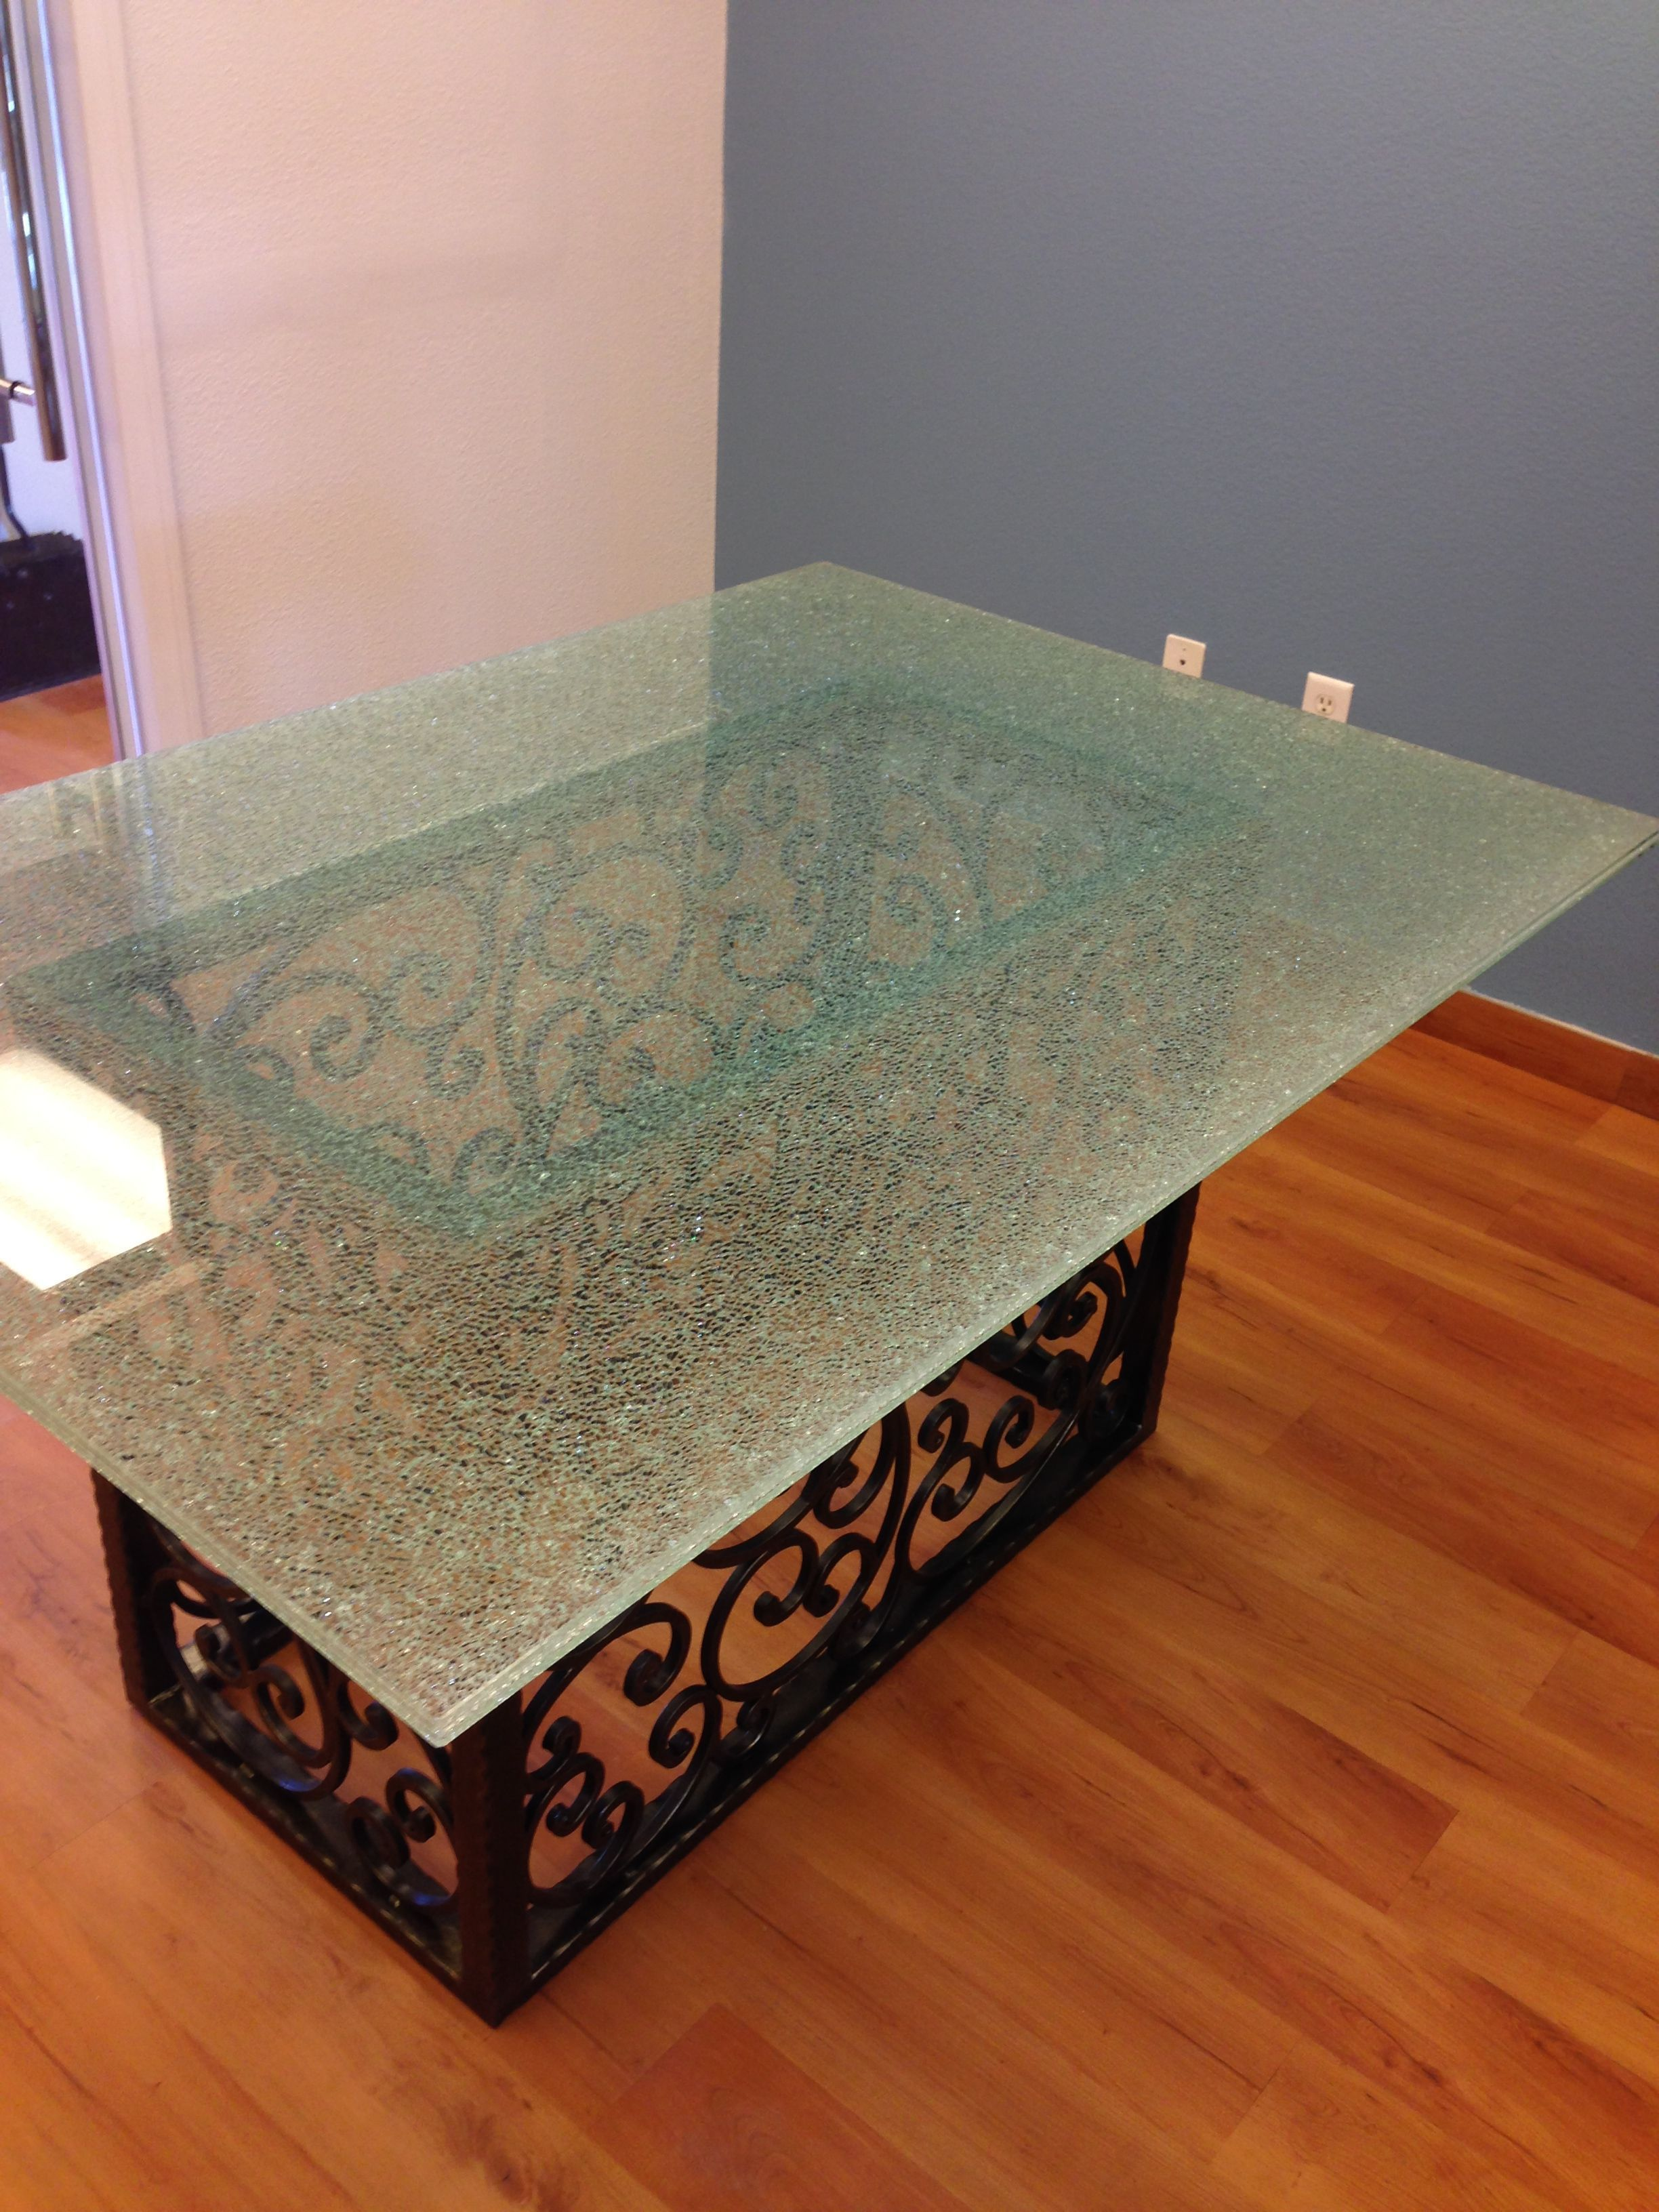 Genial Round Plexiglass Table Topper   So You Searching For The Perfect Dining  Table To Really Go Into That New Apartment You Rented? Or You Need A New  Stylish Pi